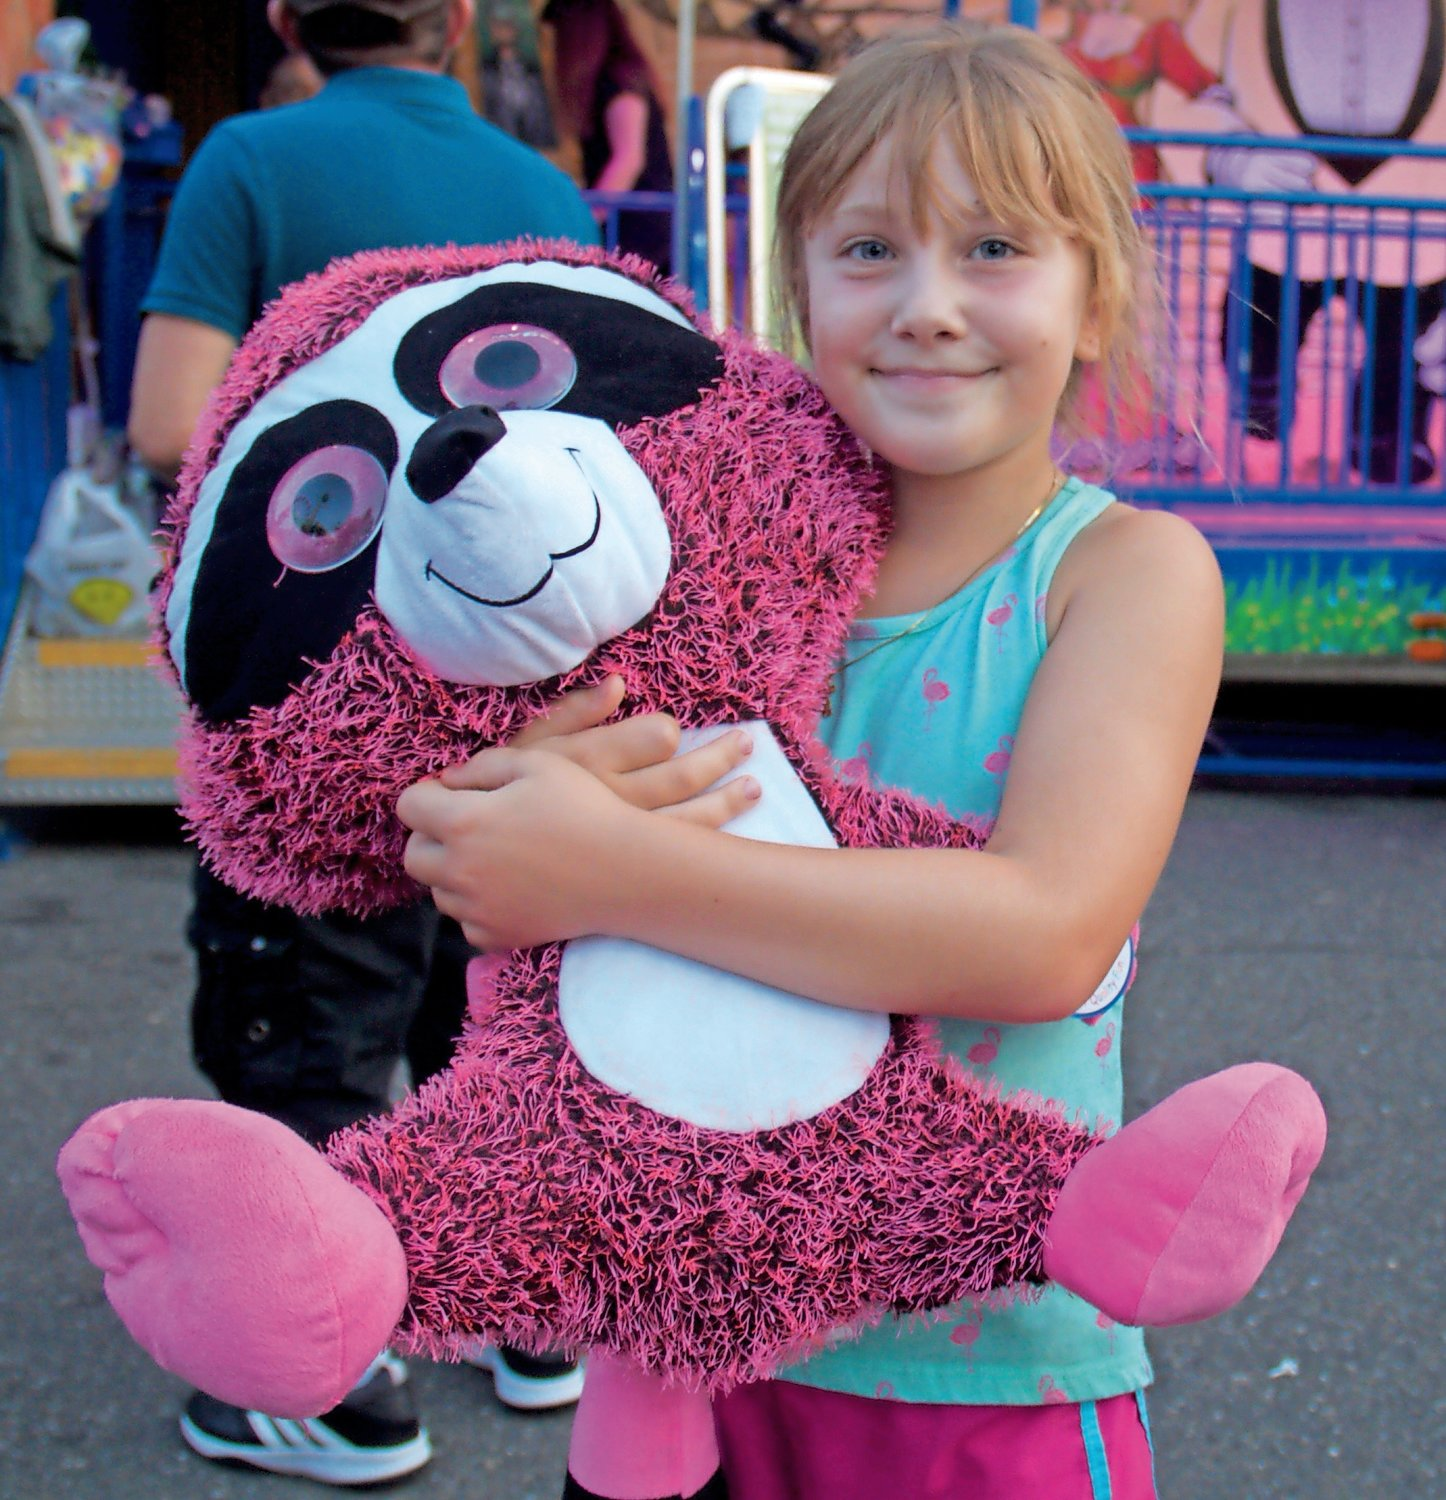 Grace Niver, 8, was proud of her giant prize raccoon.